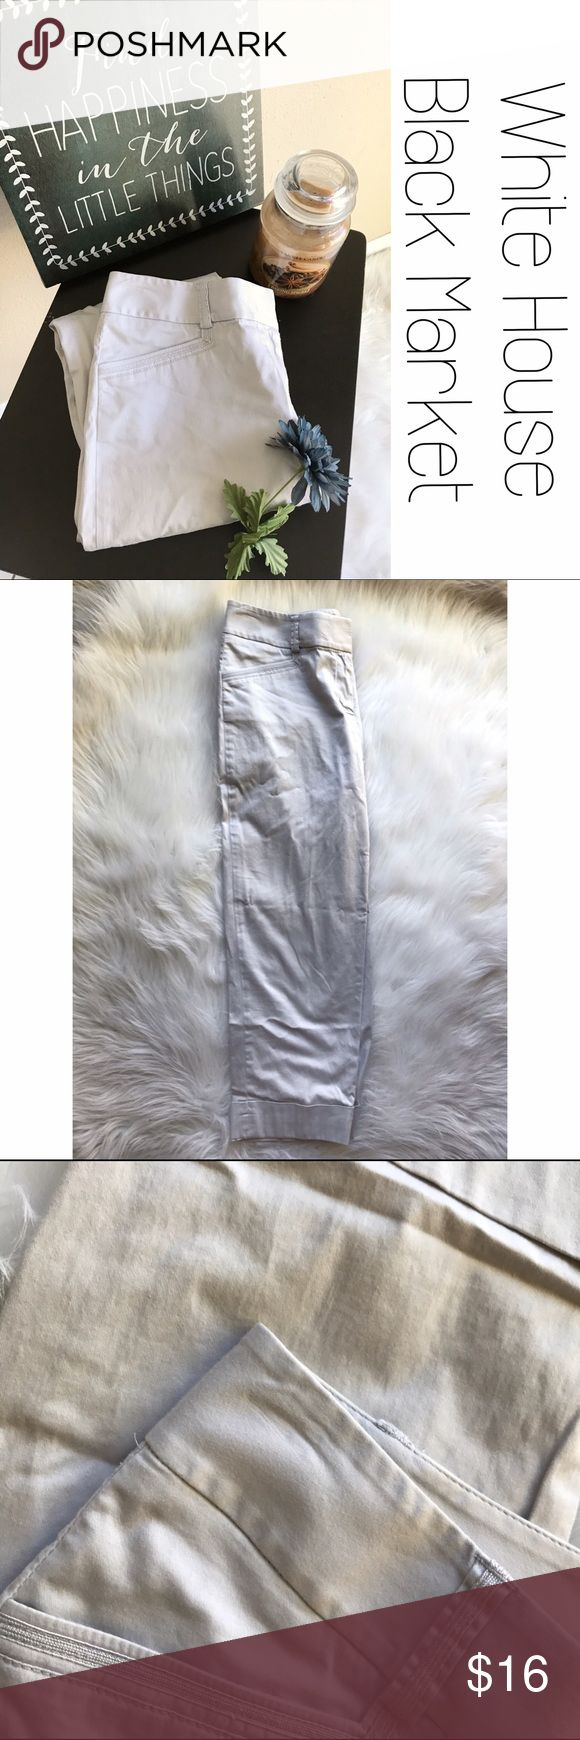 """WHBM Khaki Cropped Pants Capris 4 Soft and I the perfect neutral color.  Measurements lying flat: waist 15"""", rise 9"""", hips 18"""" and inseam 22.5"""".  Size 4.  EUC. B9 White House Black Market Pants"""